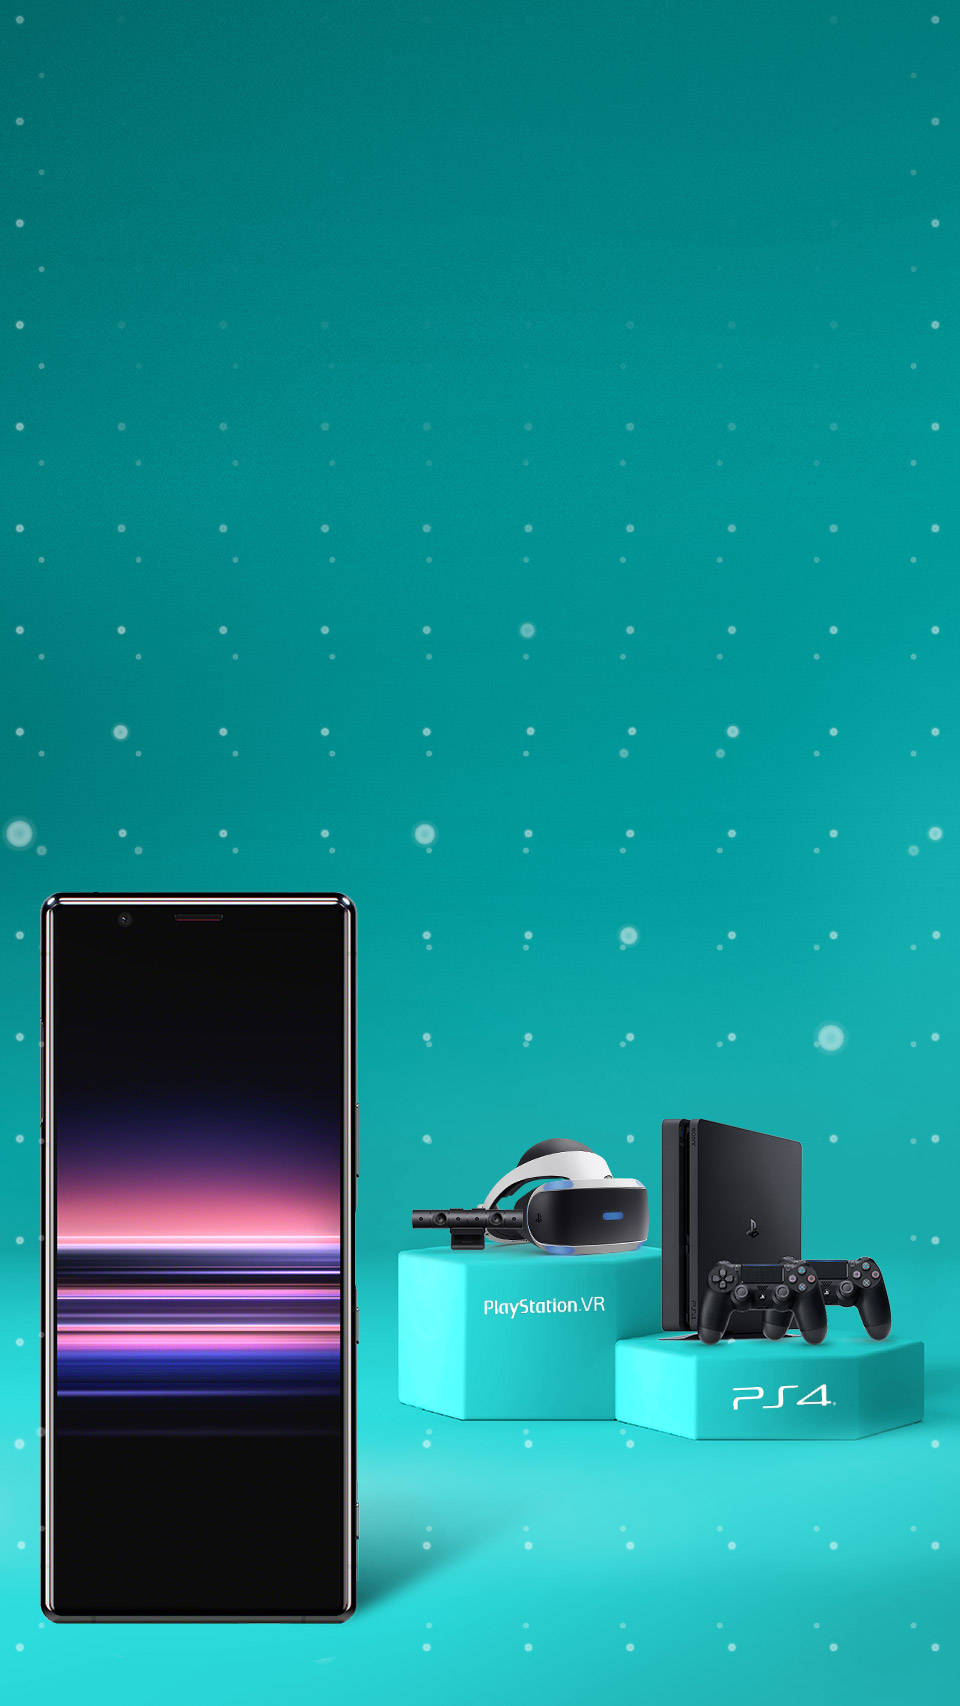 Sony Xperia 5 with Playstation and VR